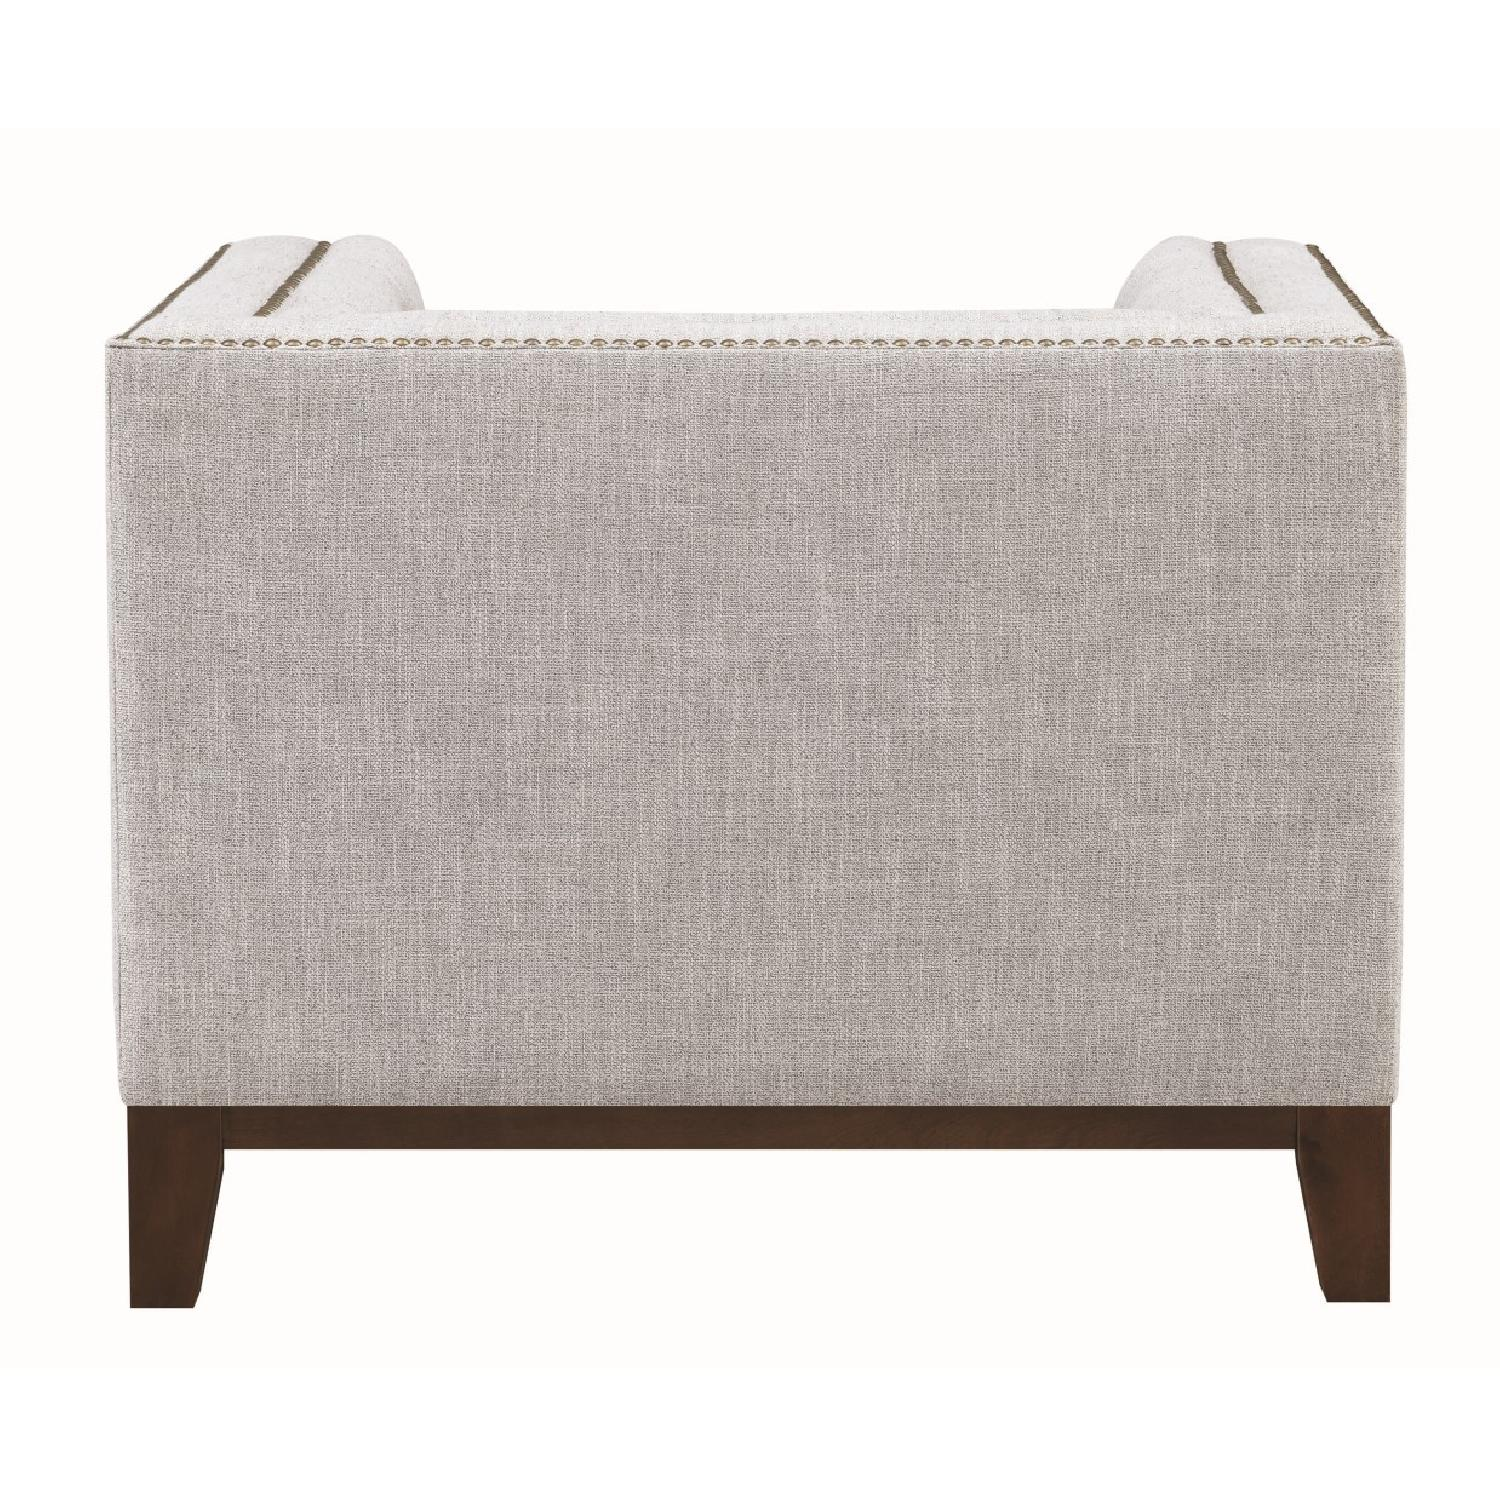 Modern Style Armchair w/ Tufted Buttons & Nailhead Accent - image-1